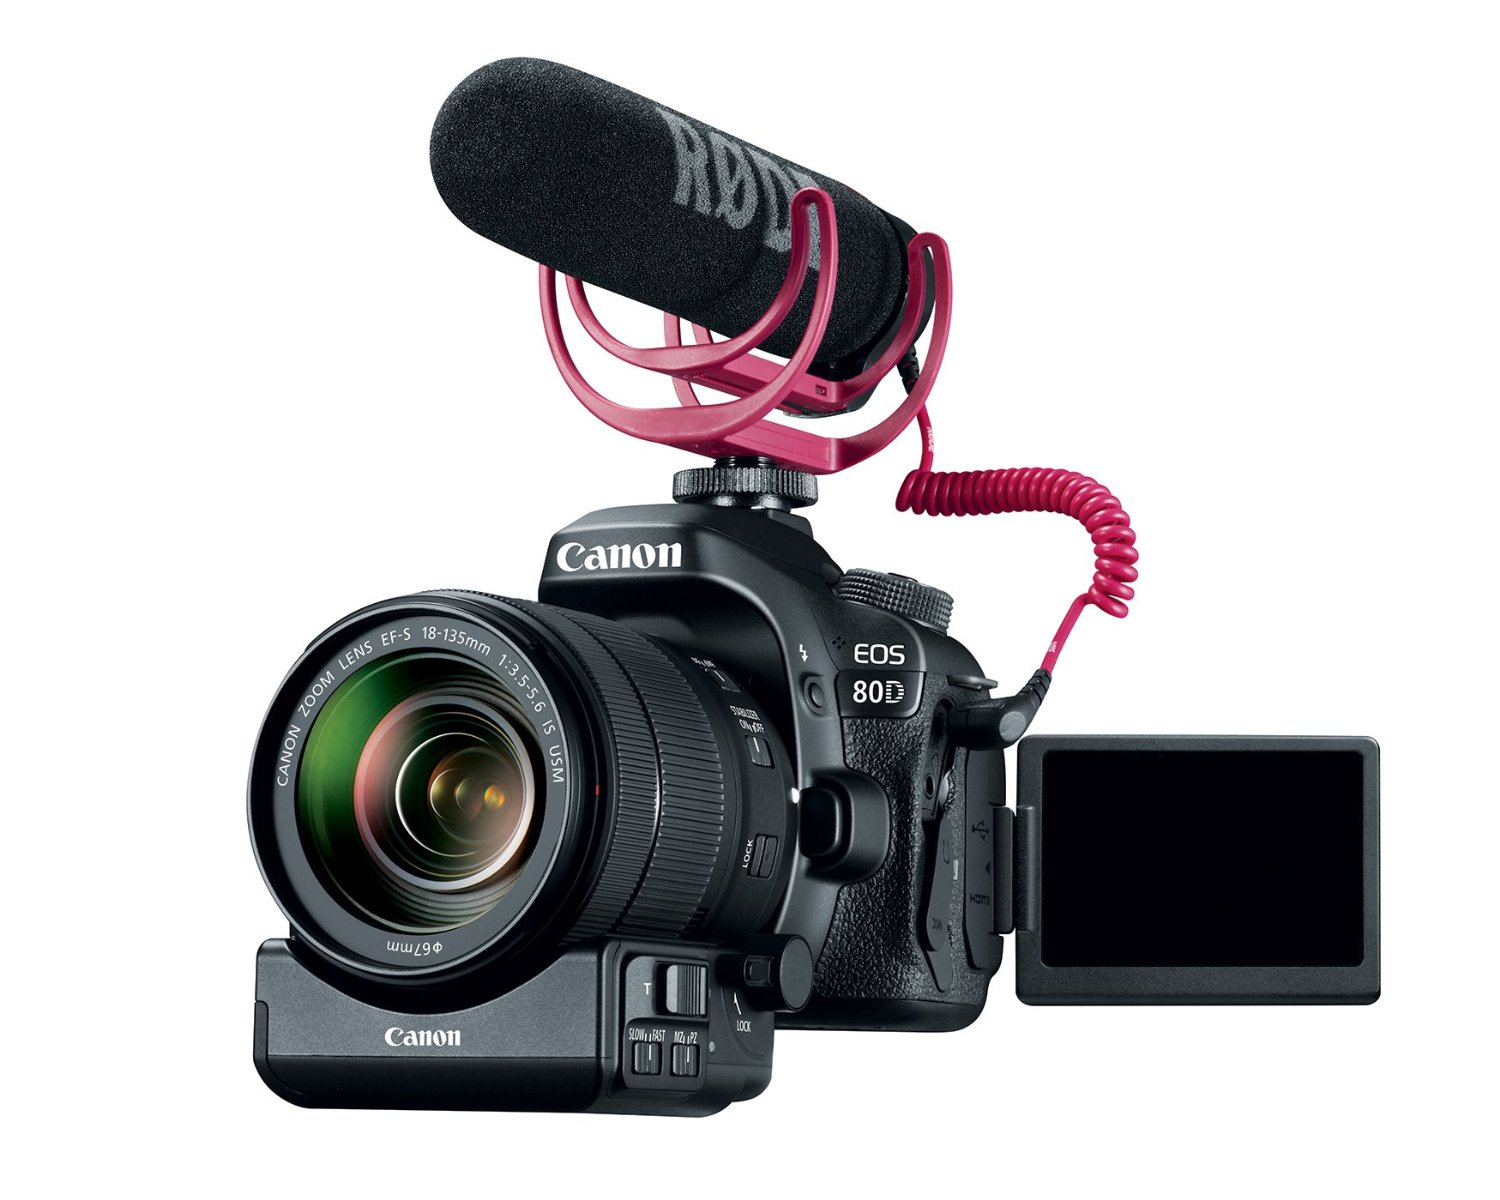 Hot Deal Canon Eos 80d Video Creator Kit For 1 699 At